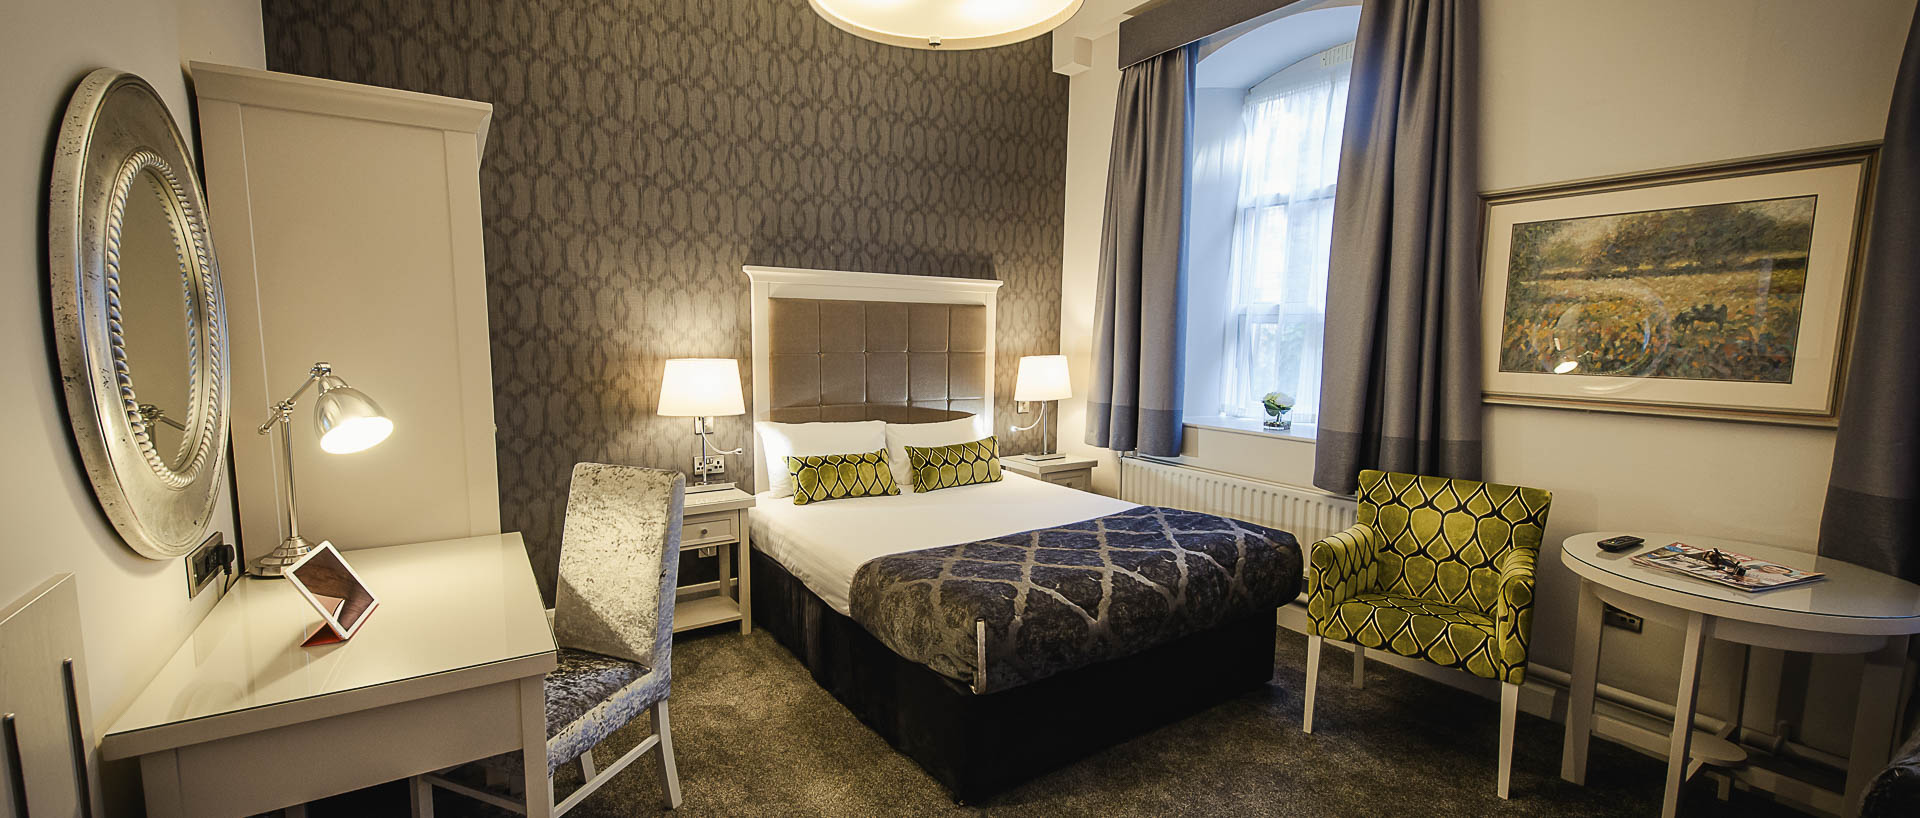 Hotel Isaacs Cork Partner Property of Rewards From Us To You